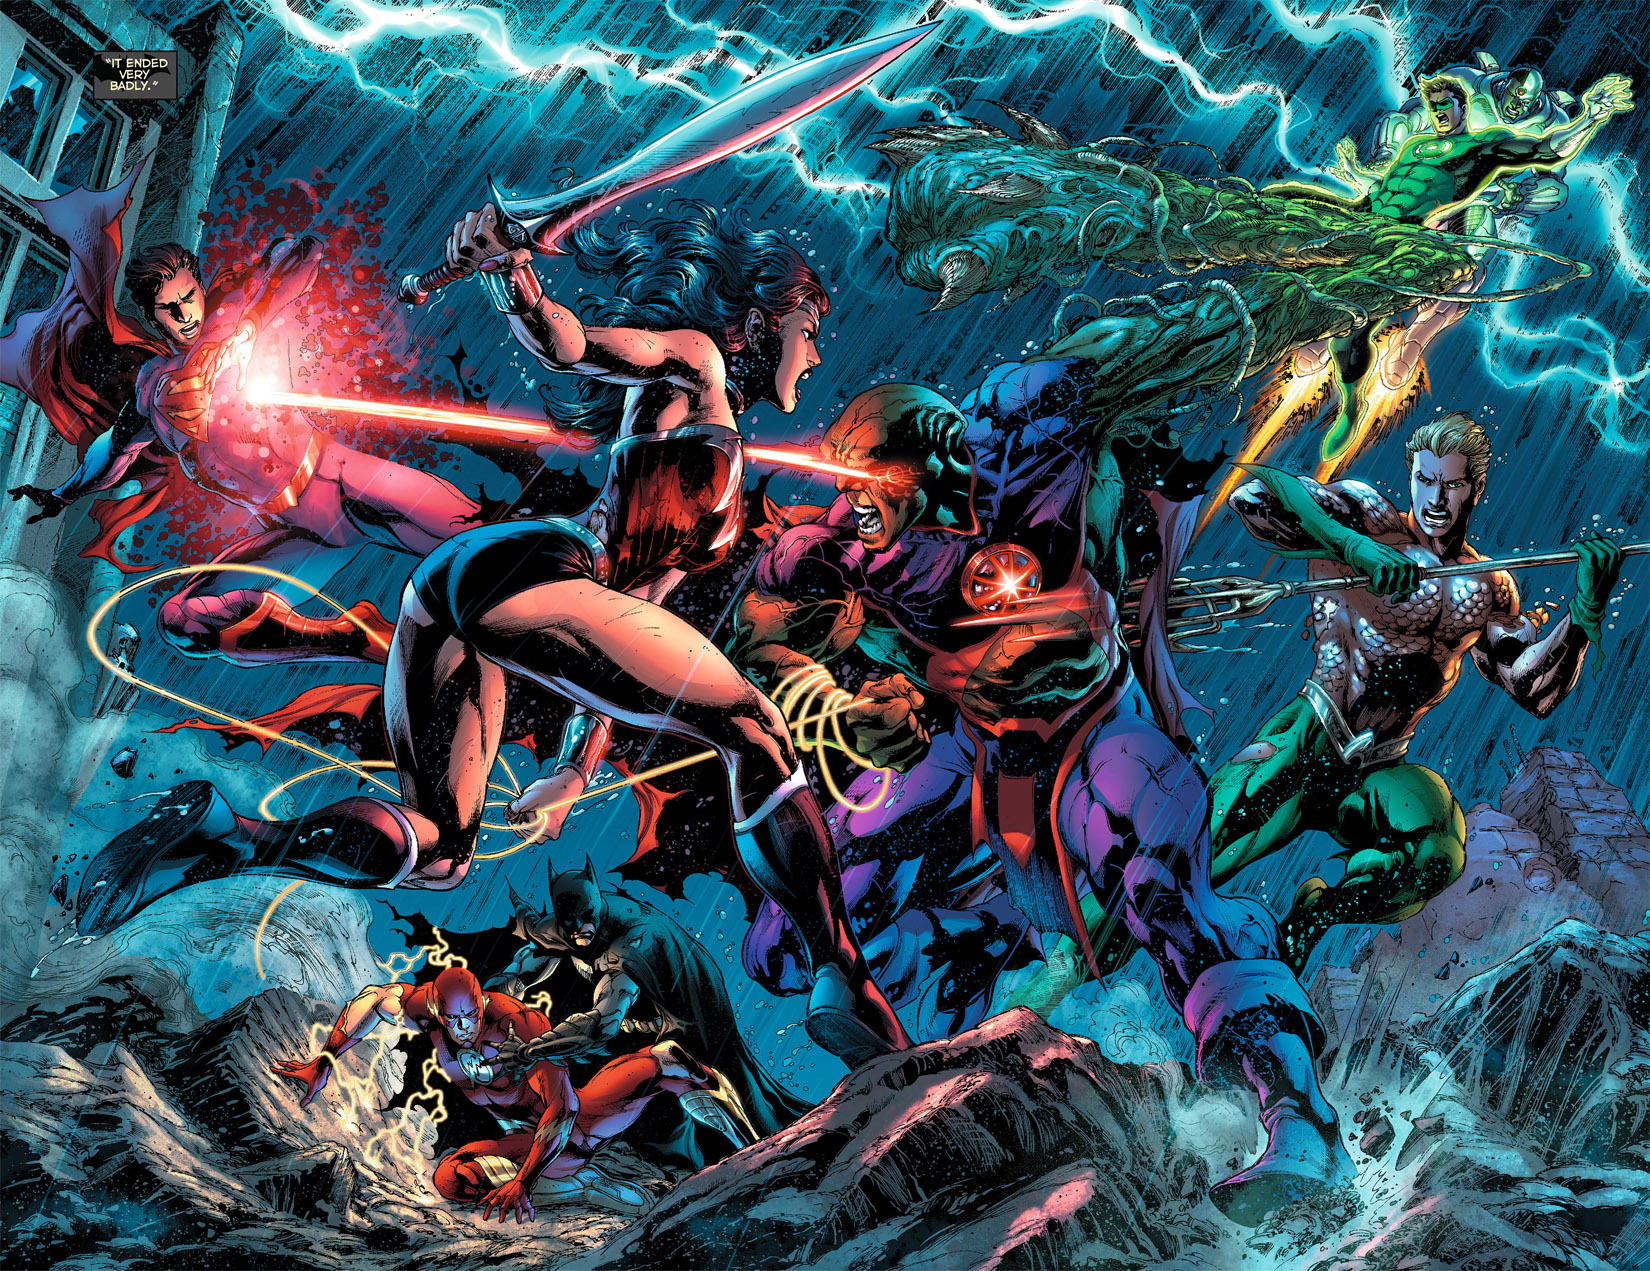 2302968-justiceleague_8_thegroup_022